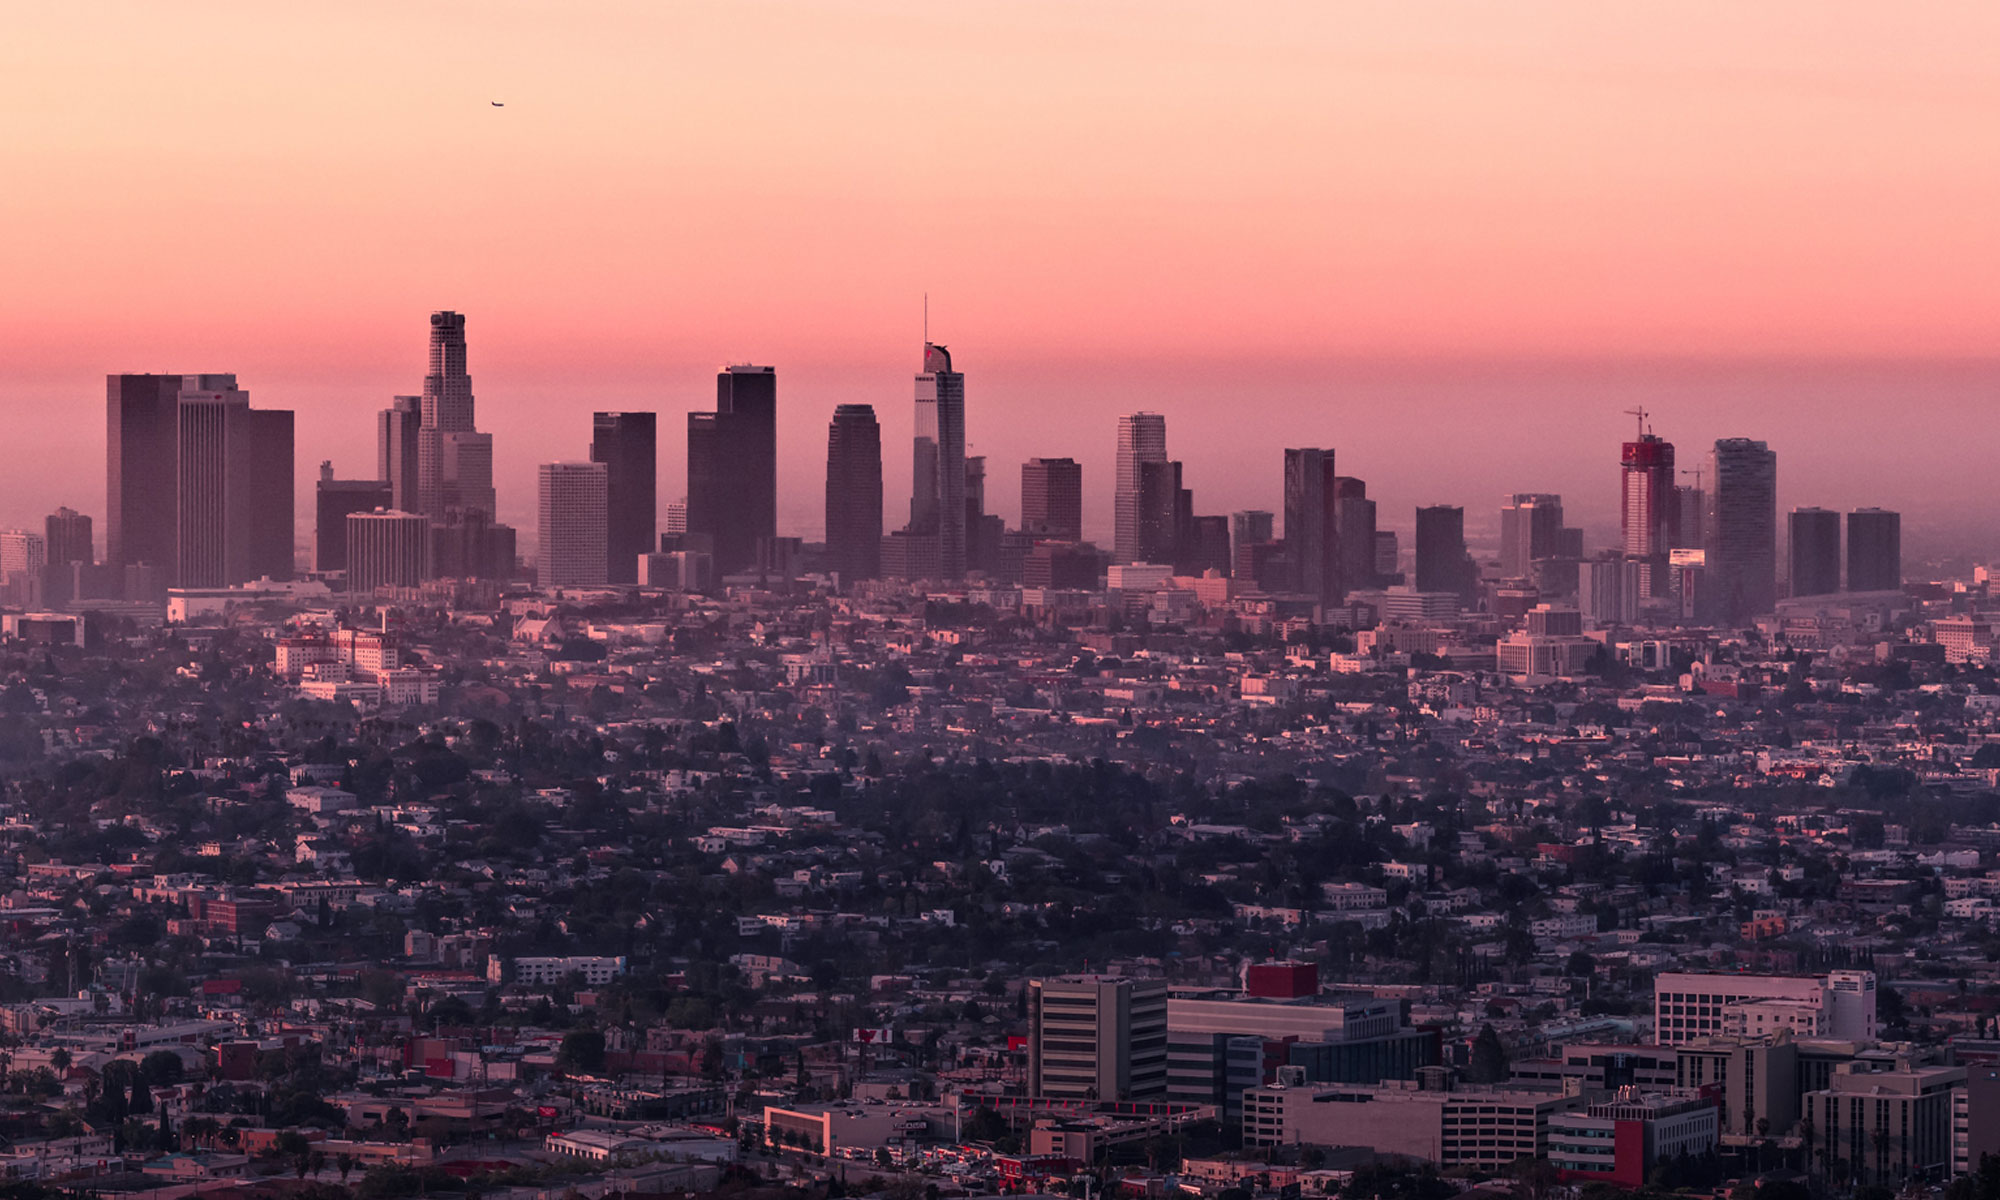 Los Angeles skyline at sunrise.